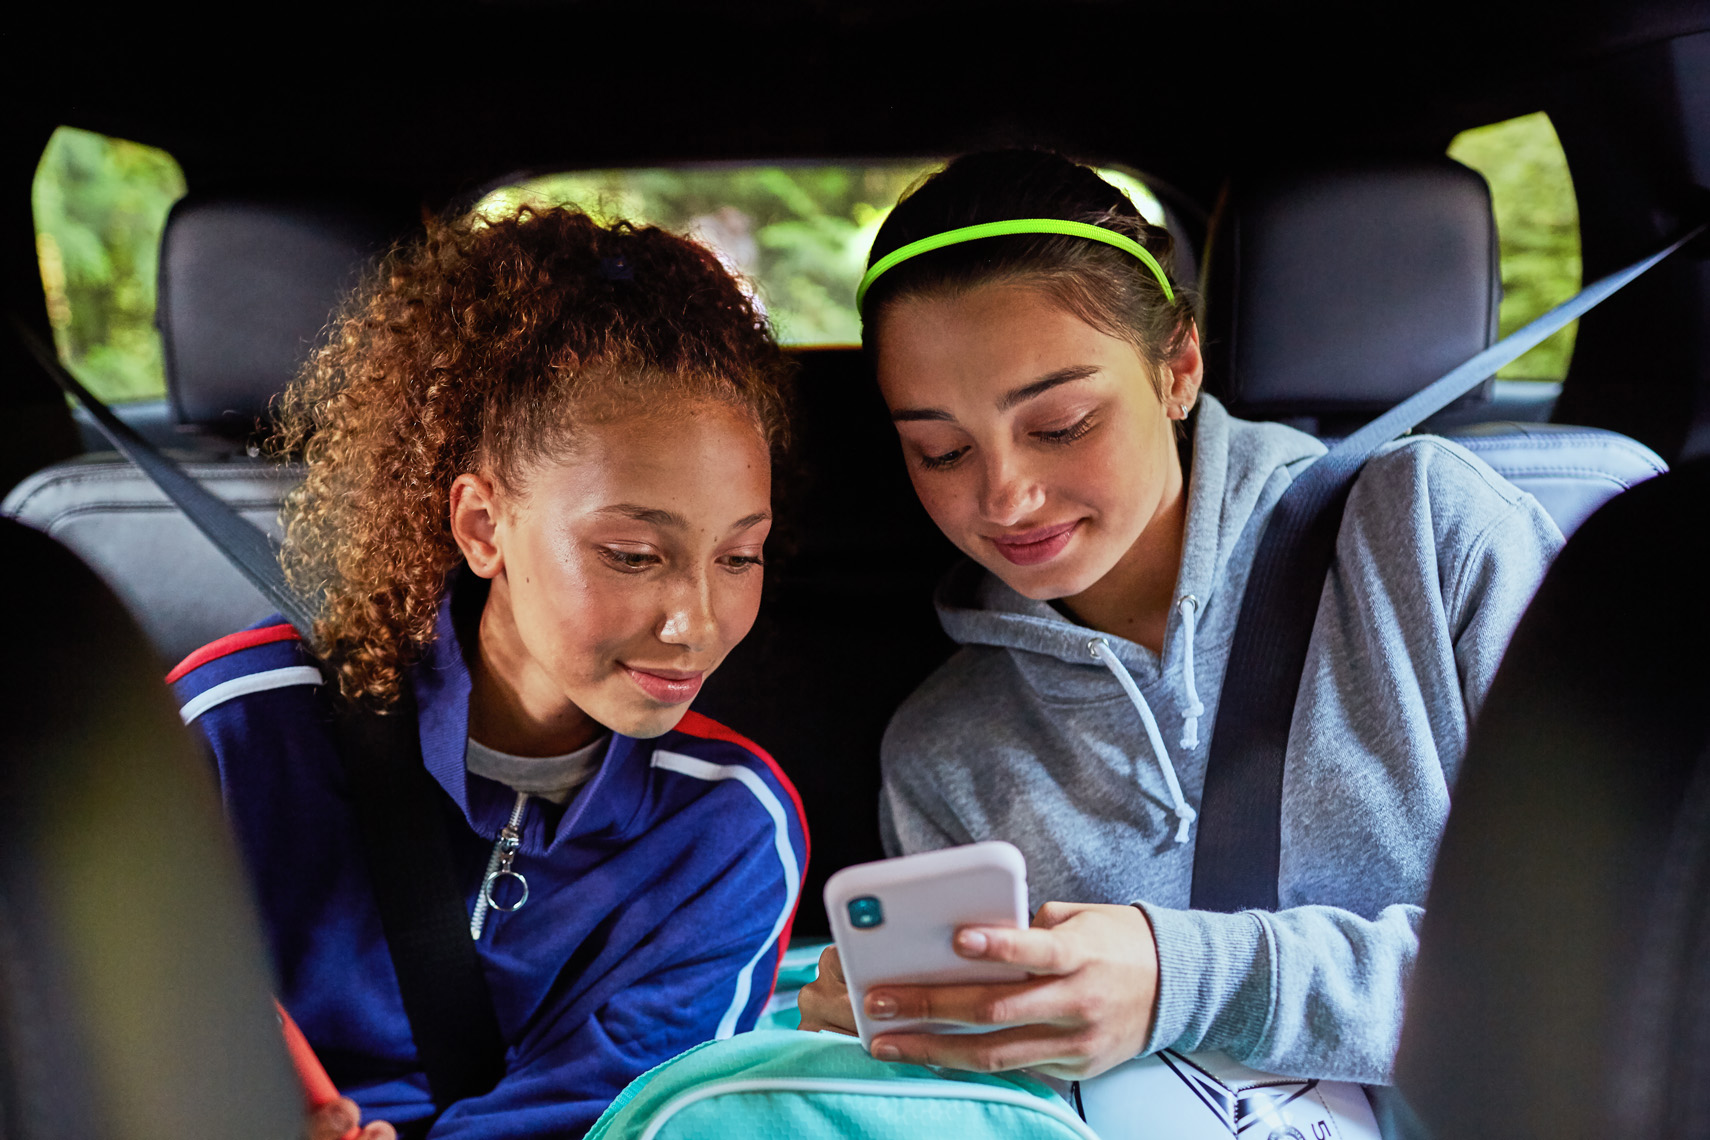 Teenage girls watch a video on a phone in the car. Lifestyle image by Leah Verwey